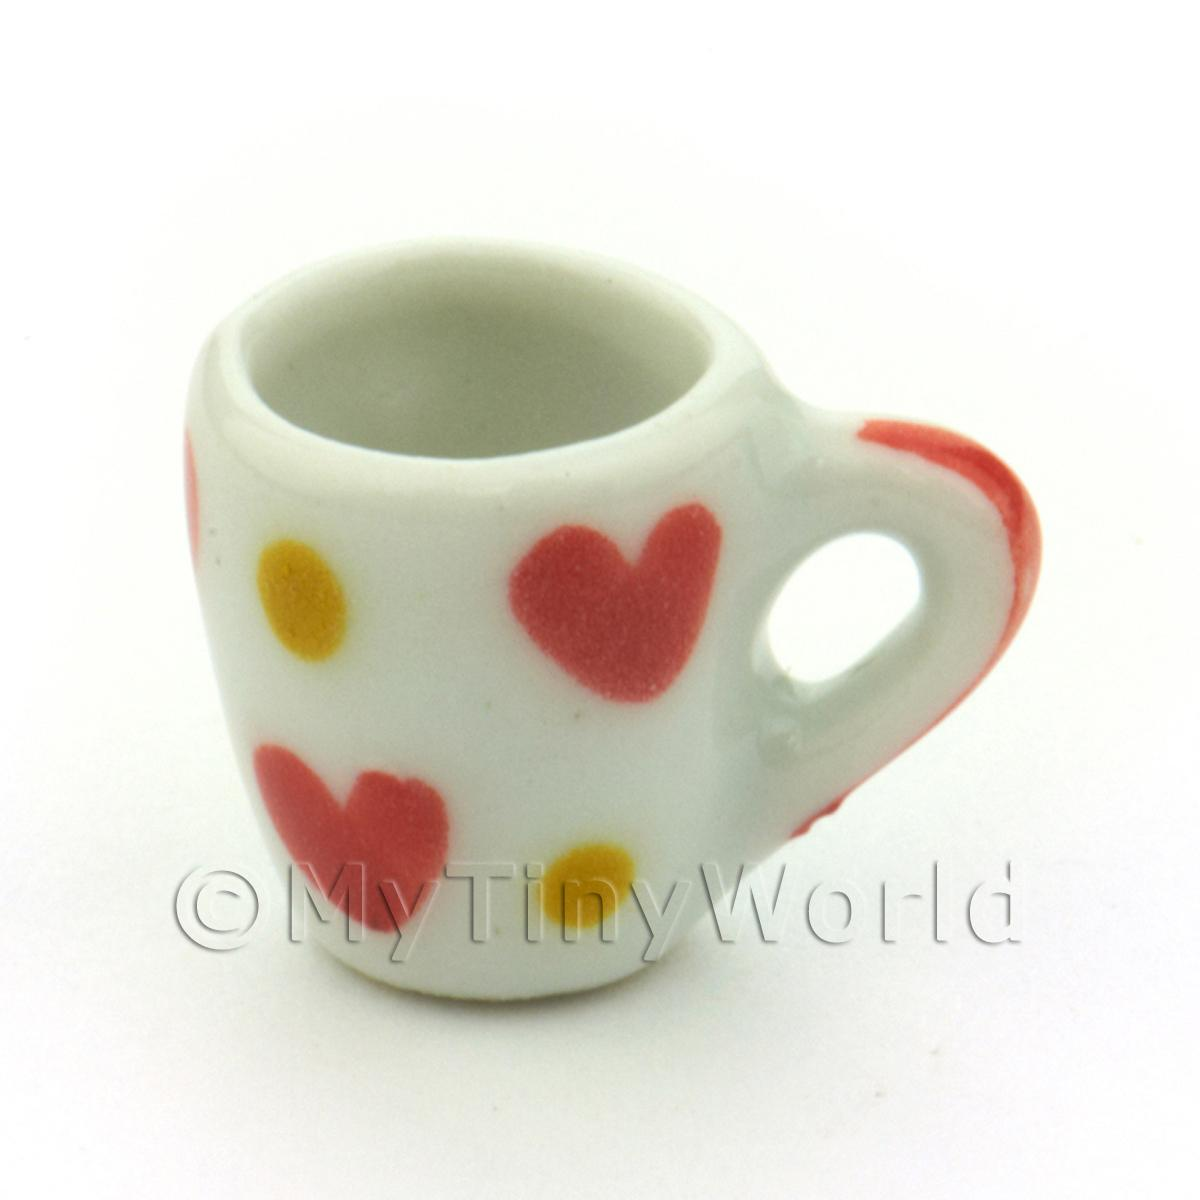 Dolls House Miniature Ceramic Soup Mug With Heart Pattern